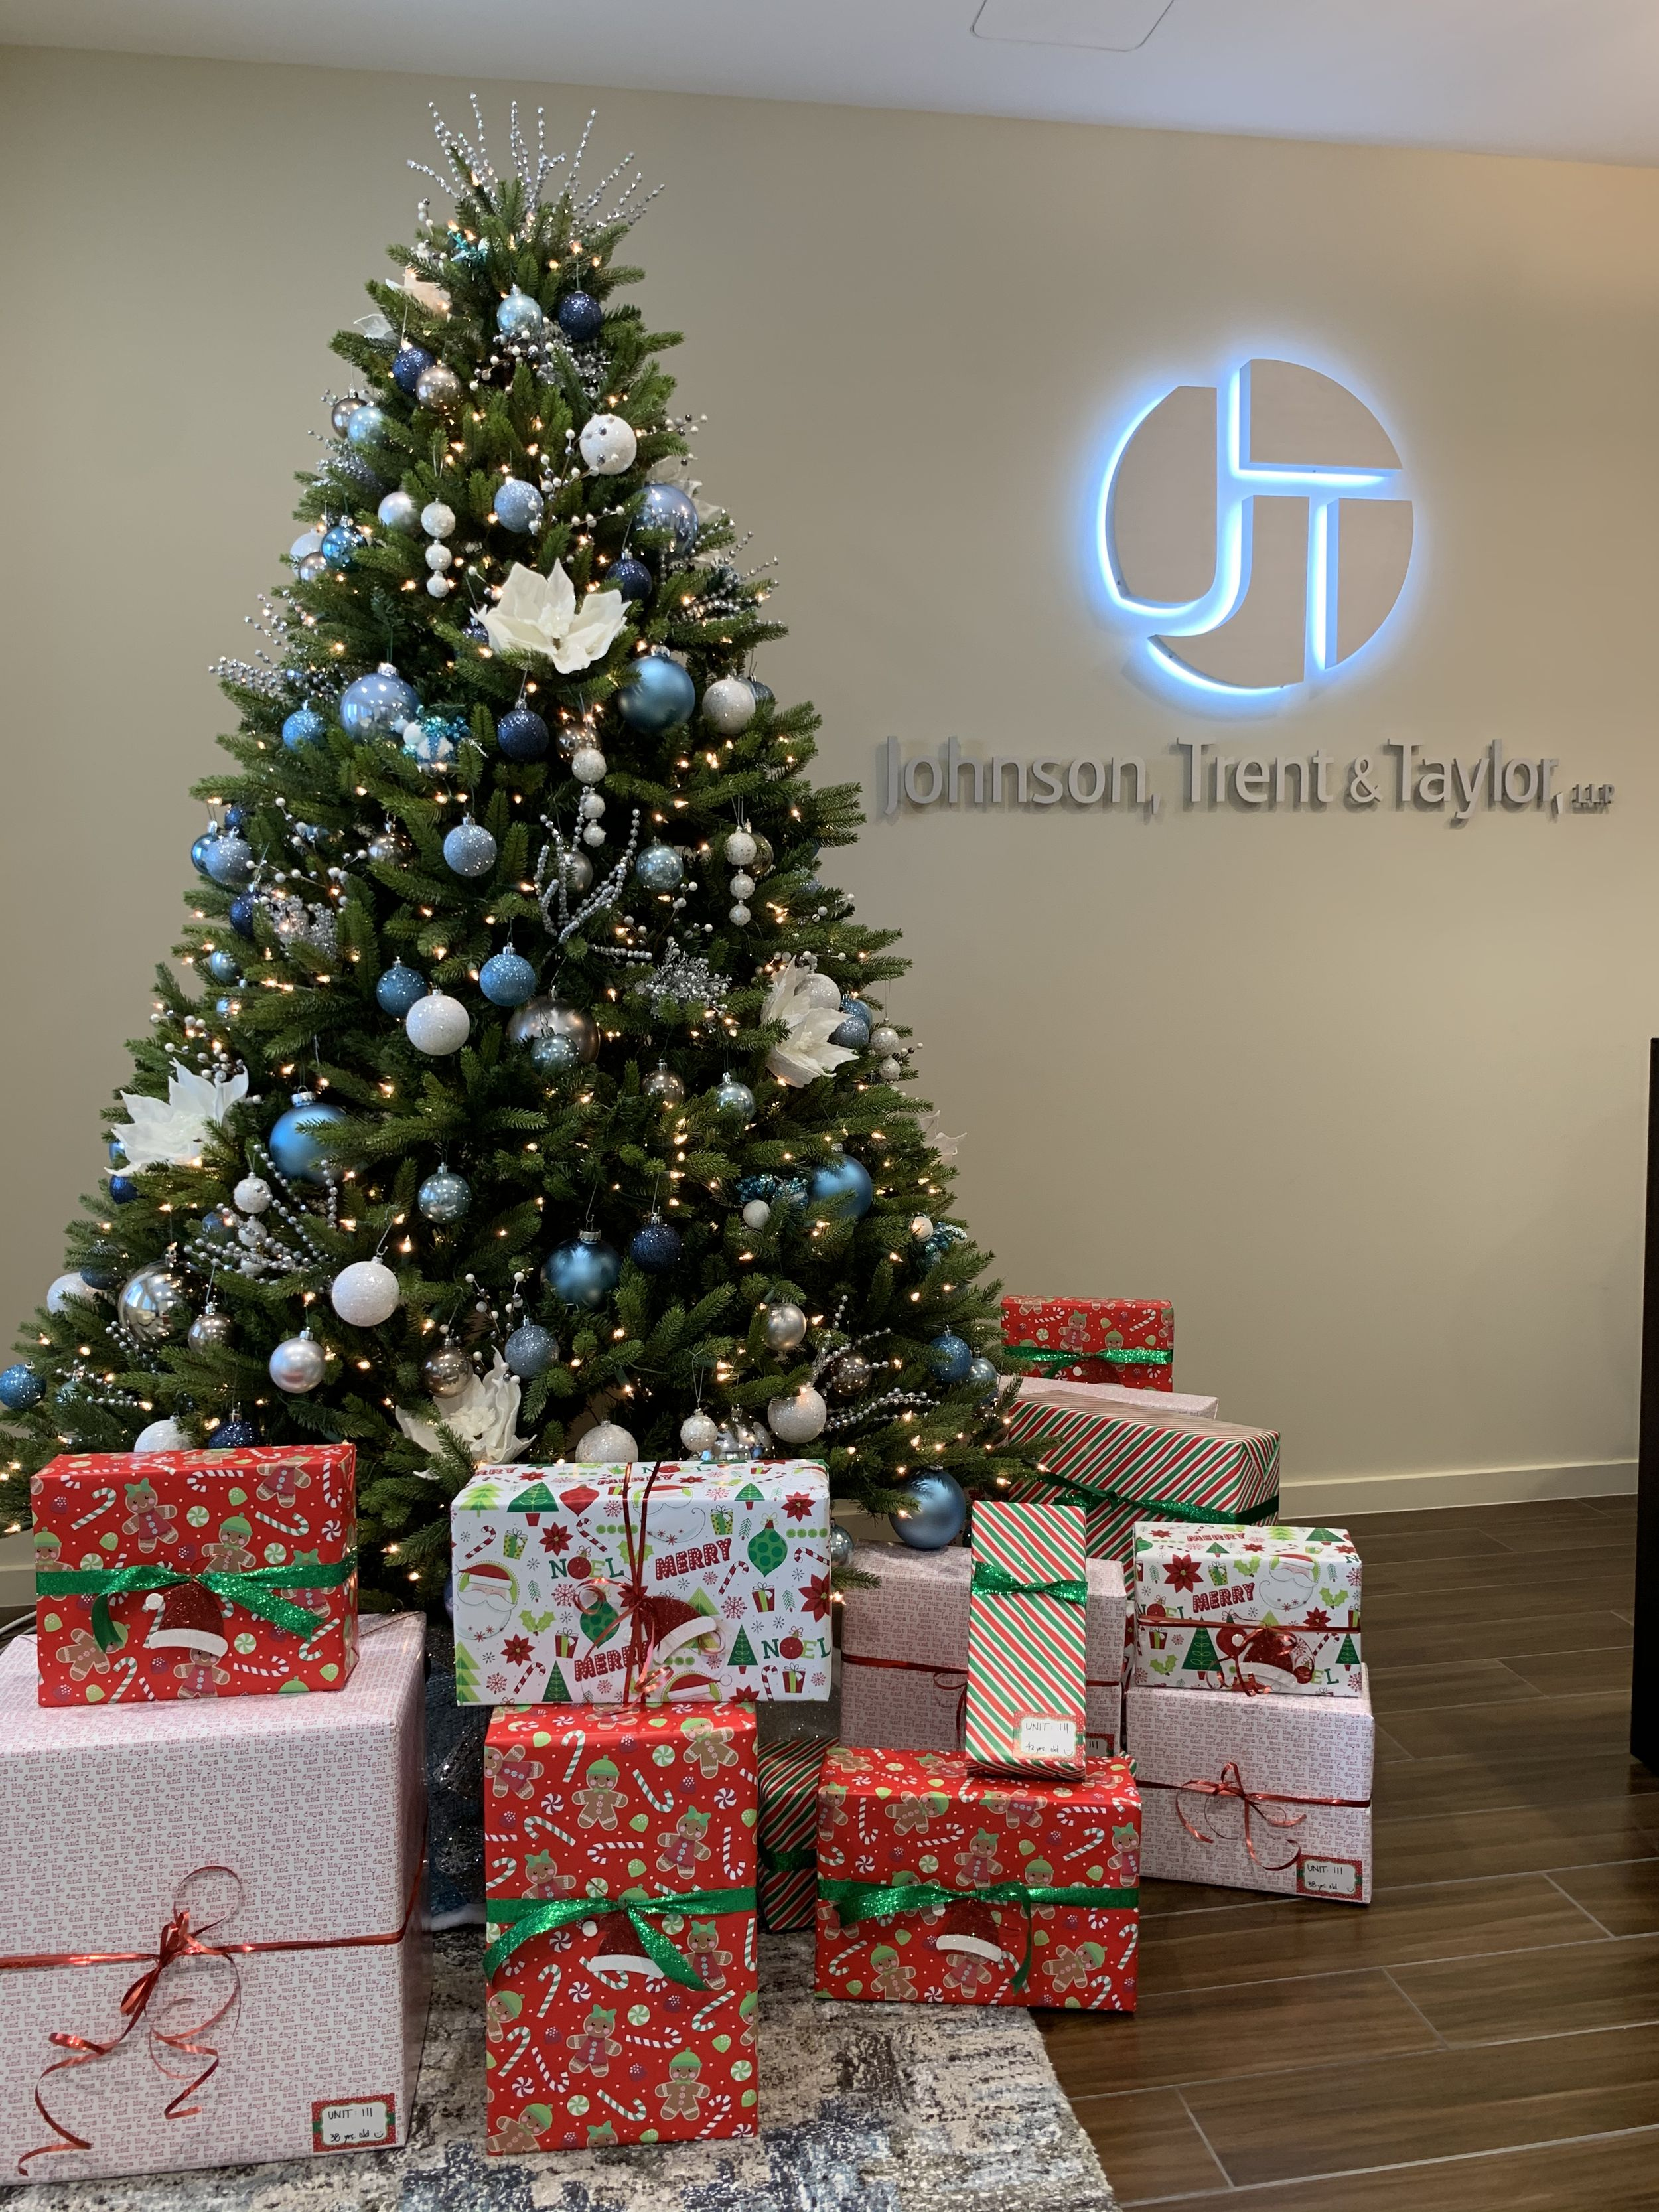 Attorneys from Johnson Trent and Taylor gather around a Christmas tree with their gifts.